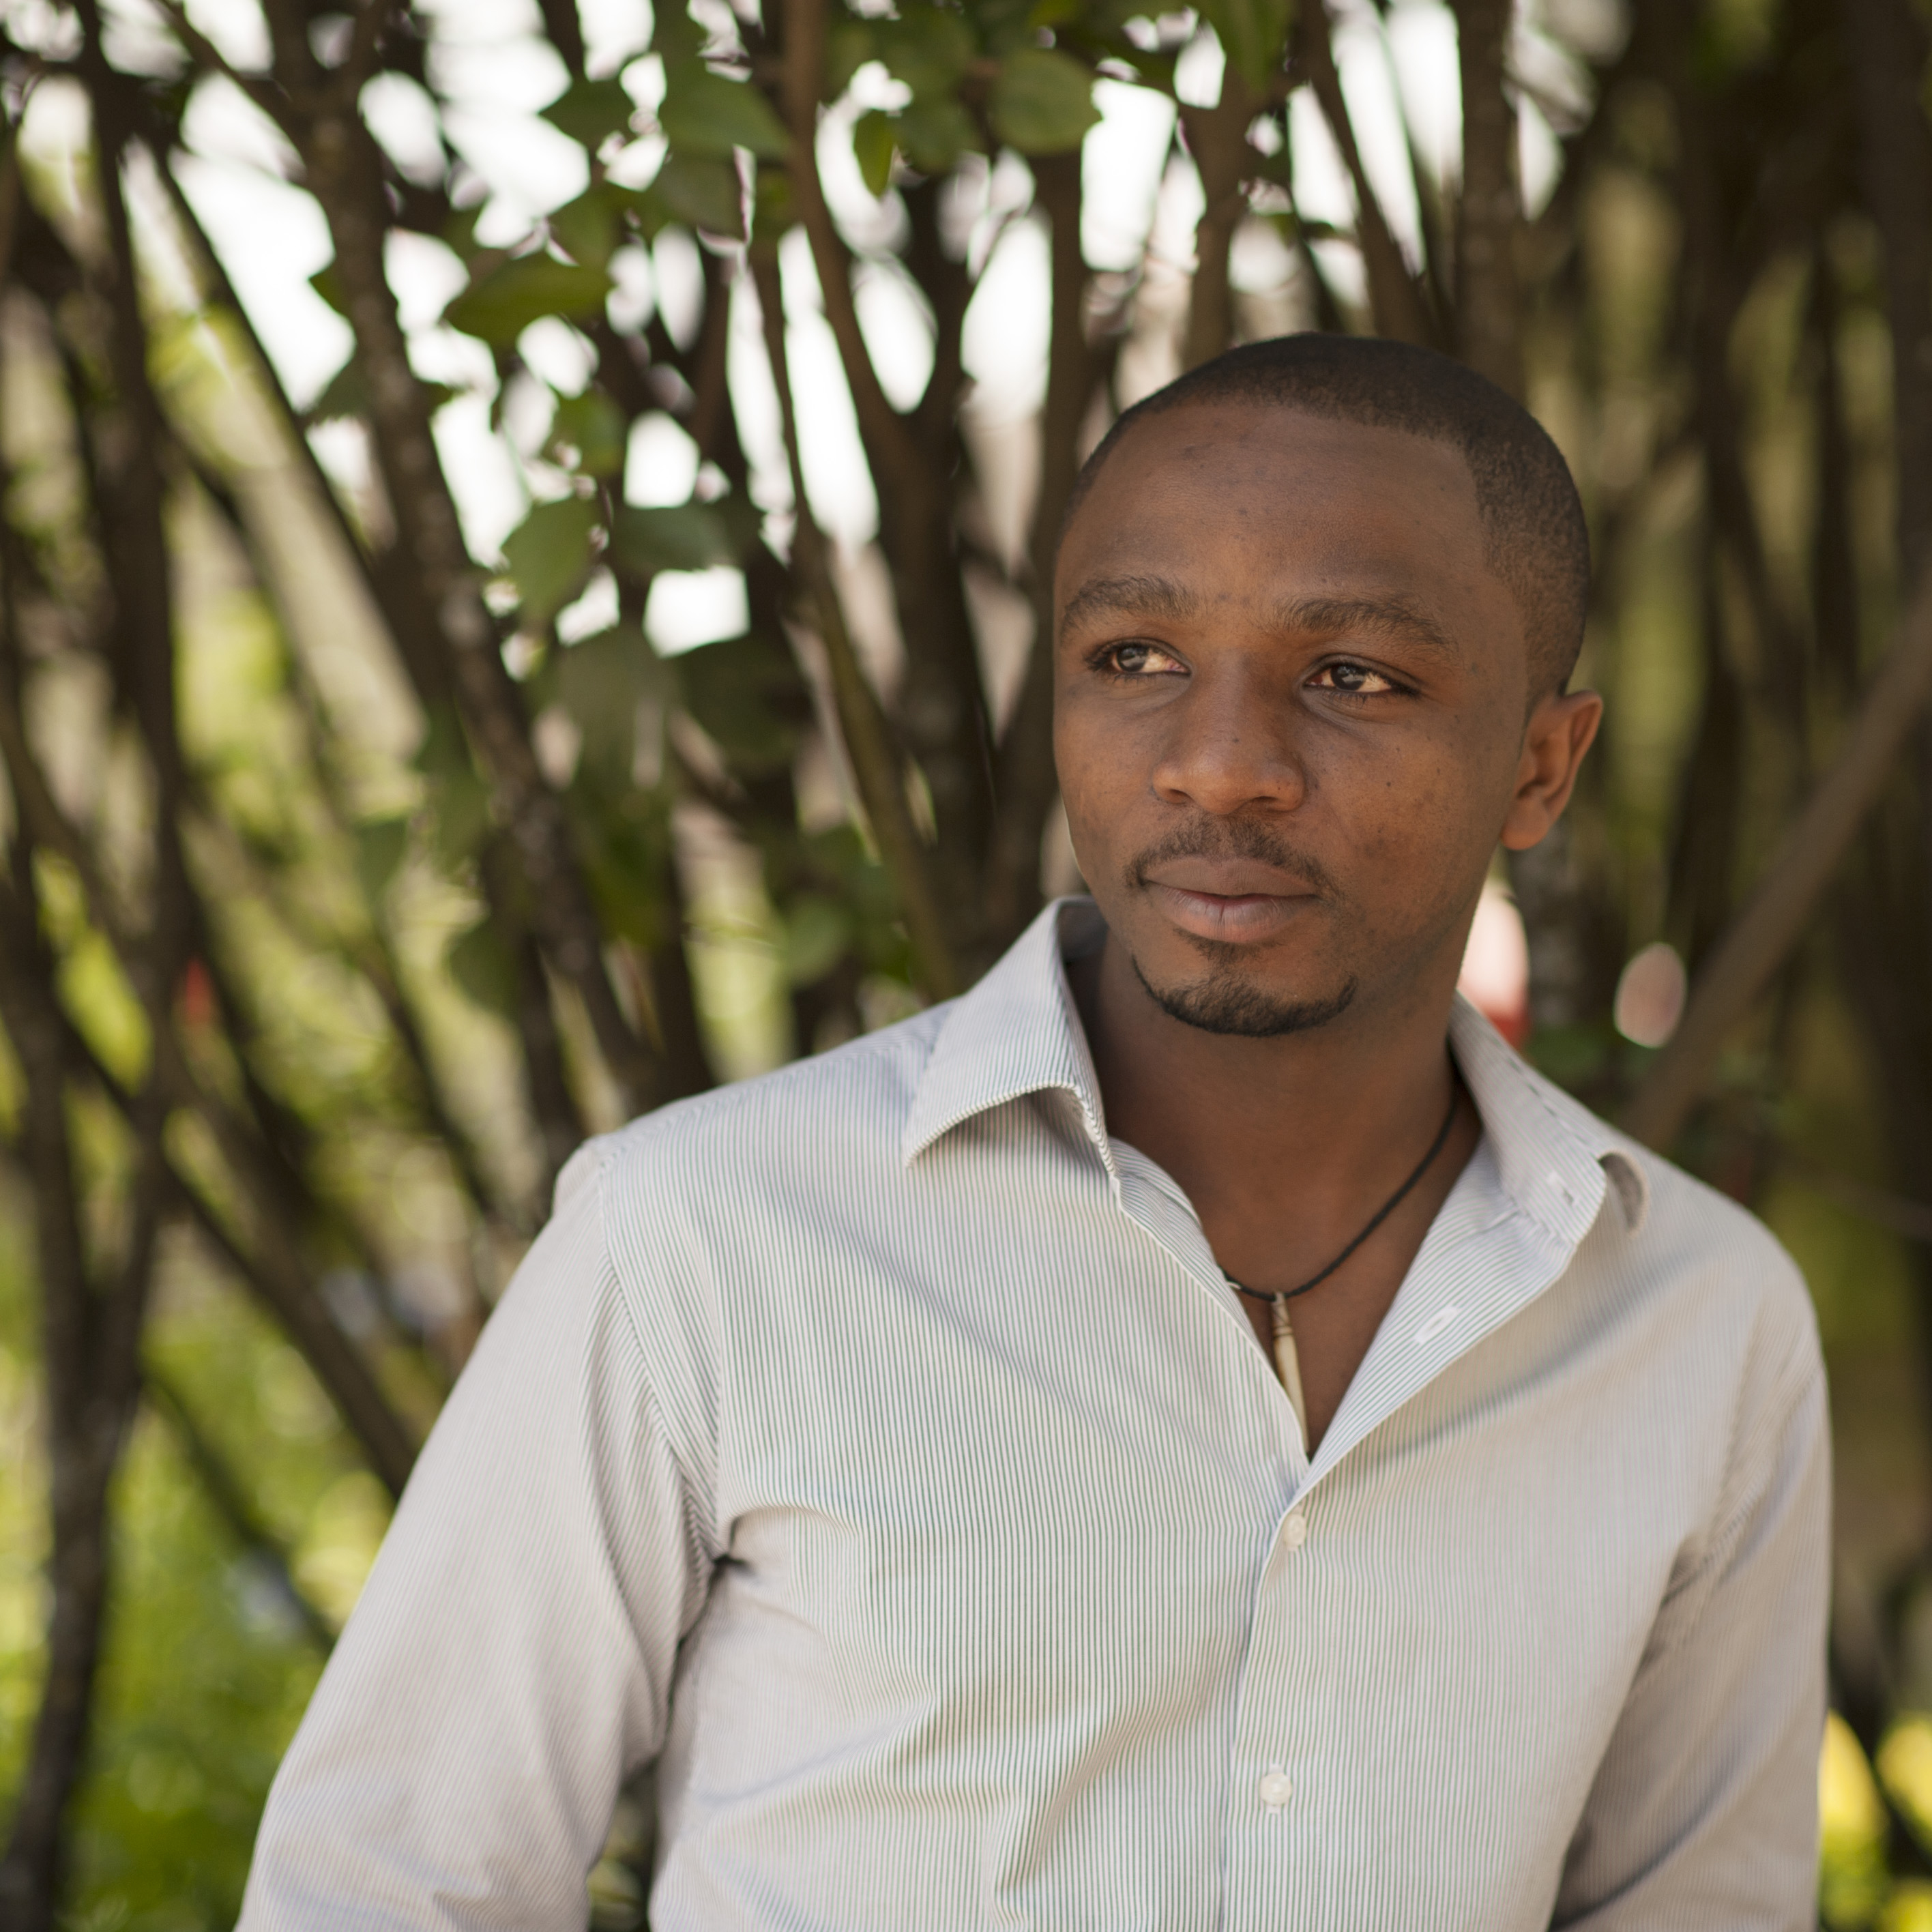 Profile picure of Olivier Nsengimana